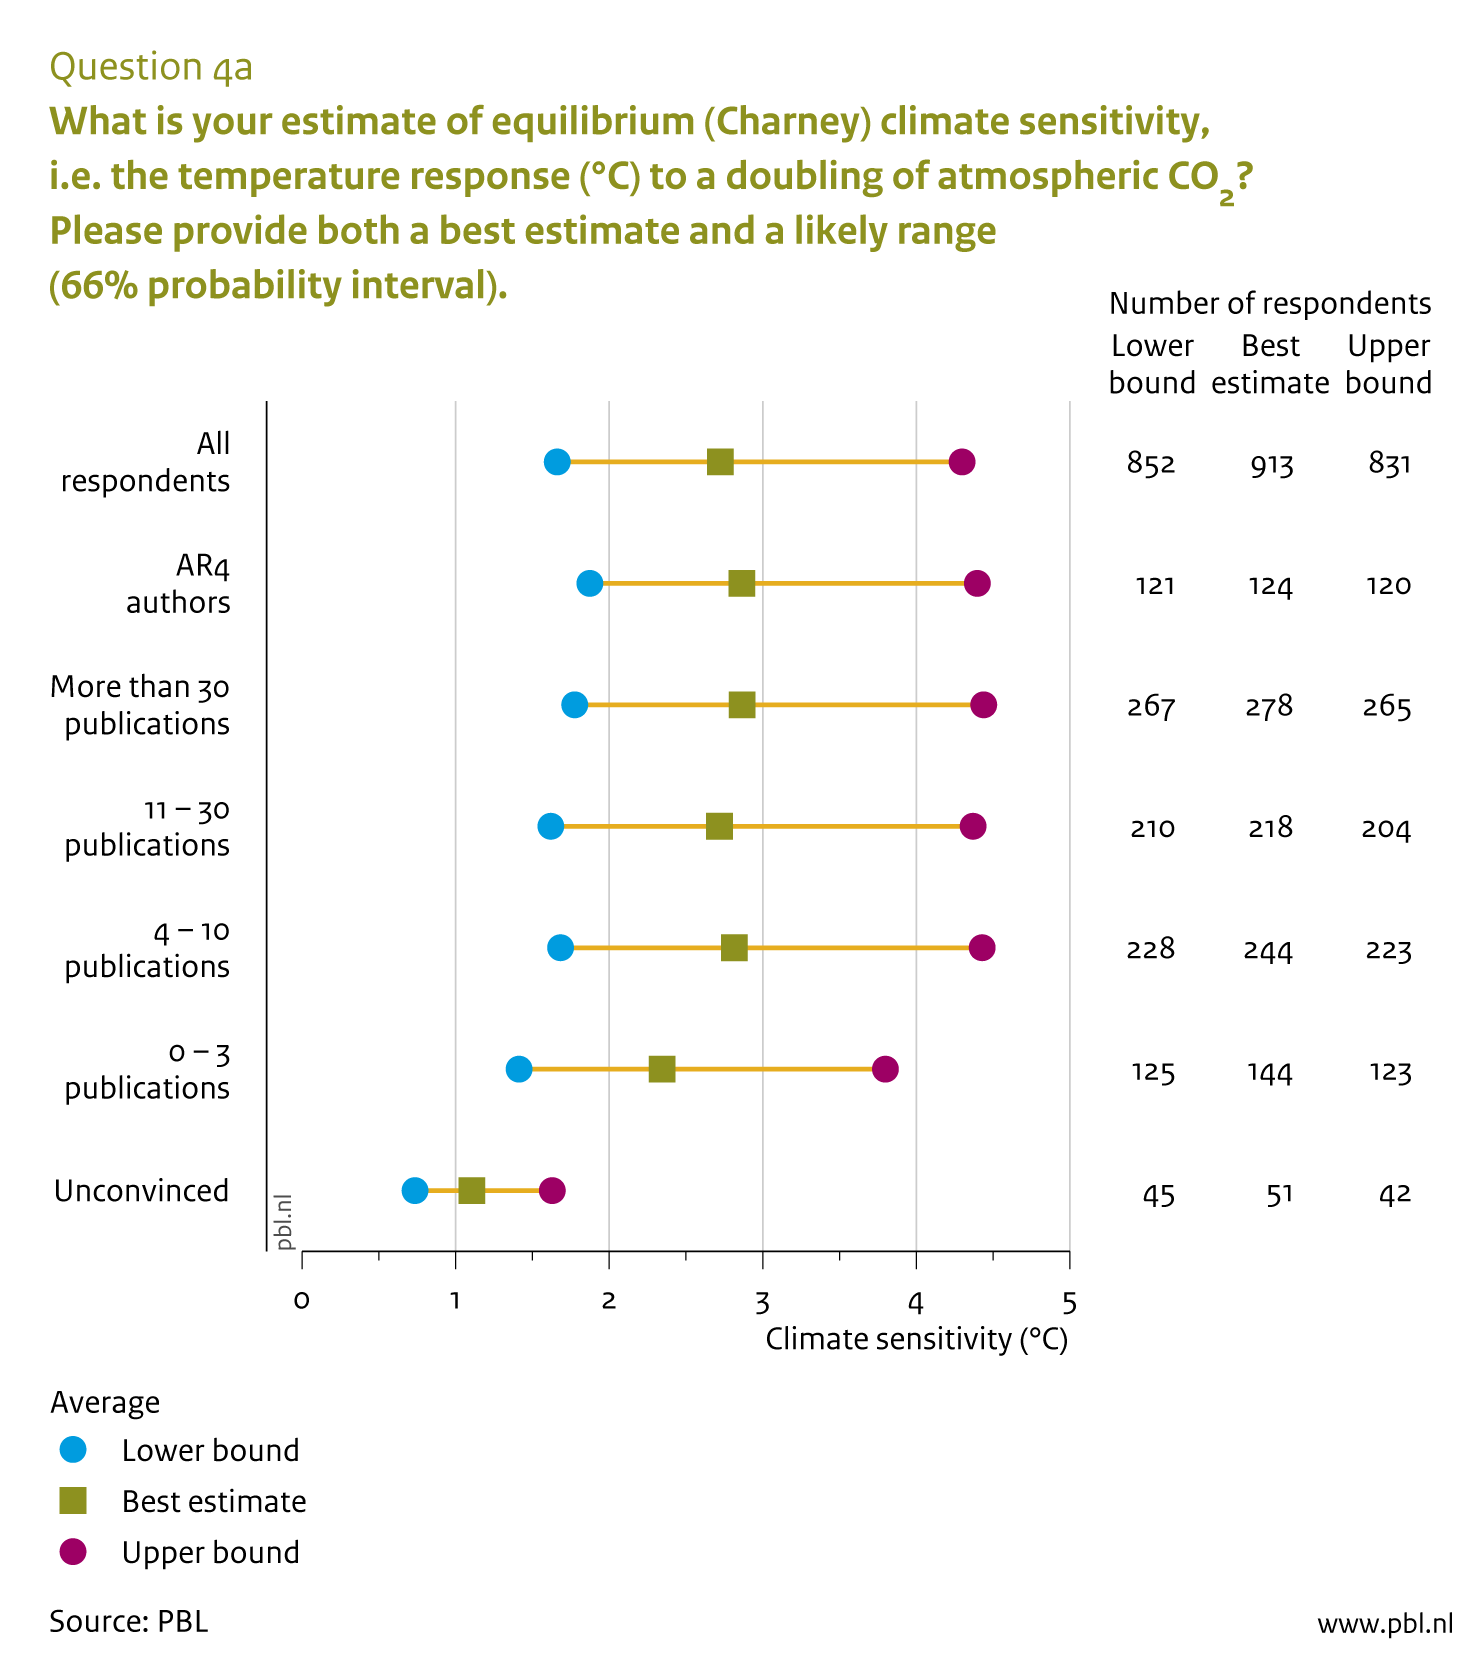 Average estimates of the Equilibrium Climate Sensitivity (ECS) and its likely range from seven groups of respondents, including authors of the Working Group I report of the fourth IPCC Assesment Report (AR4), respondents who signed public declarations critical of mainstream climate science as embodied by IPCC ('unconvinced'), and four different subgroups distinguished according to their self-declared number of climate related peer-reviewed publications (0–3; 4–10; 11–30; more than 30).